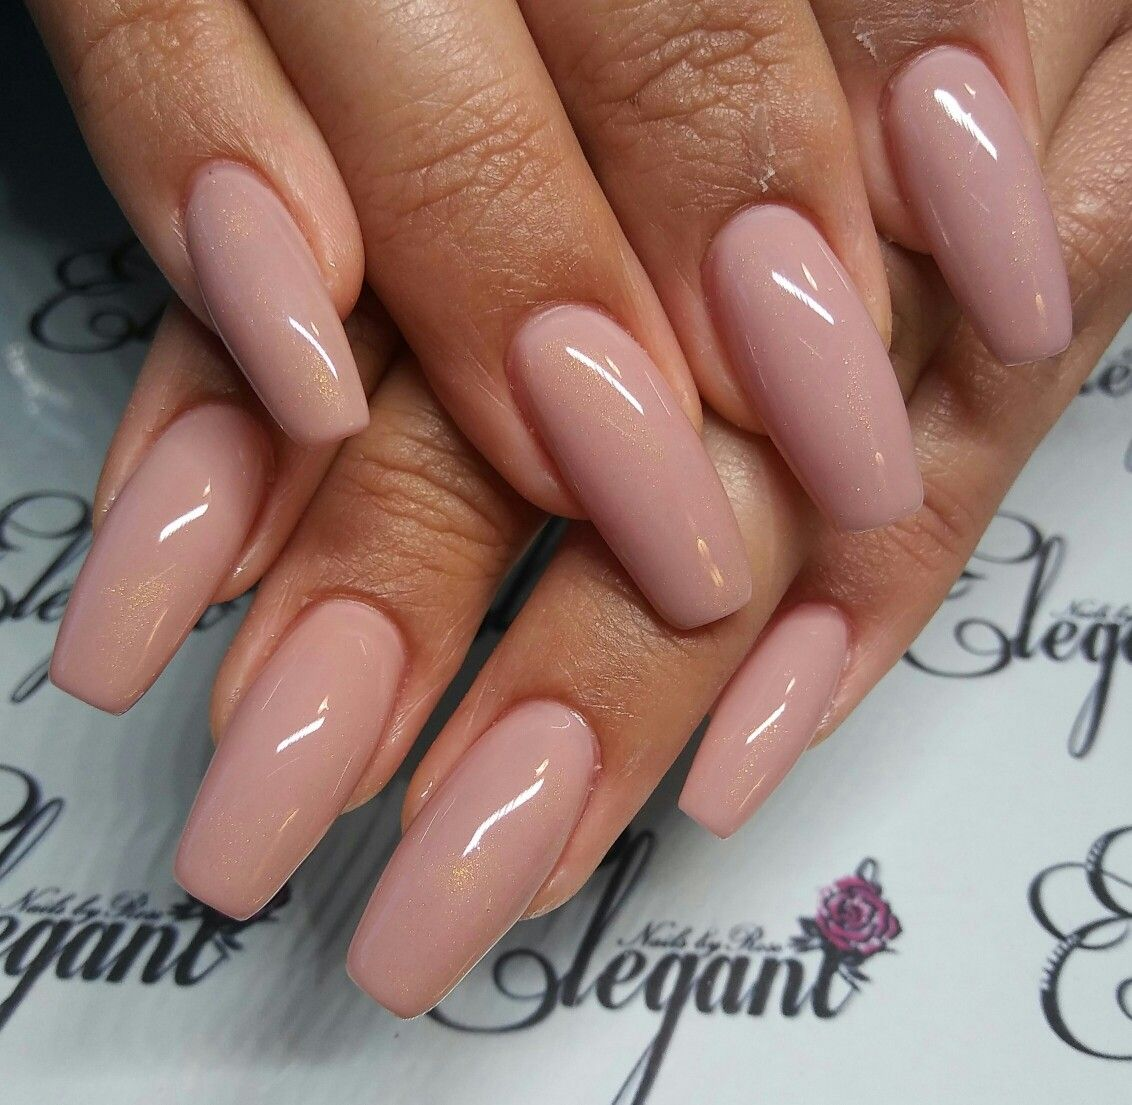 Nude Cashmere Beige Nails | Elegant Nails by Rose | Pinterest ...